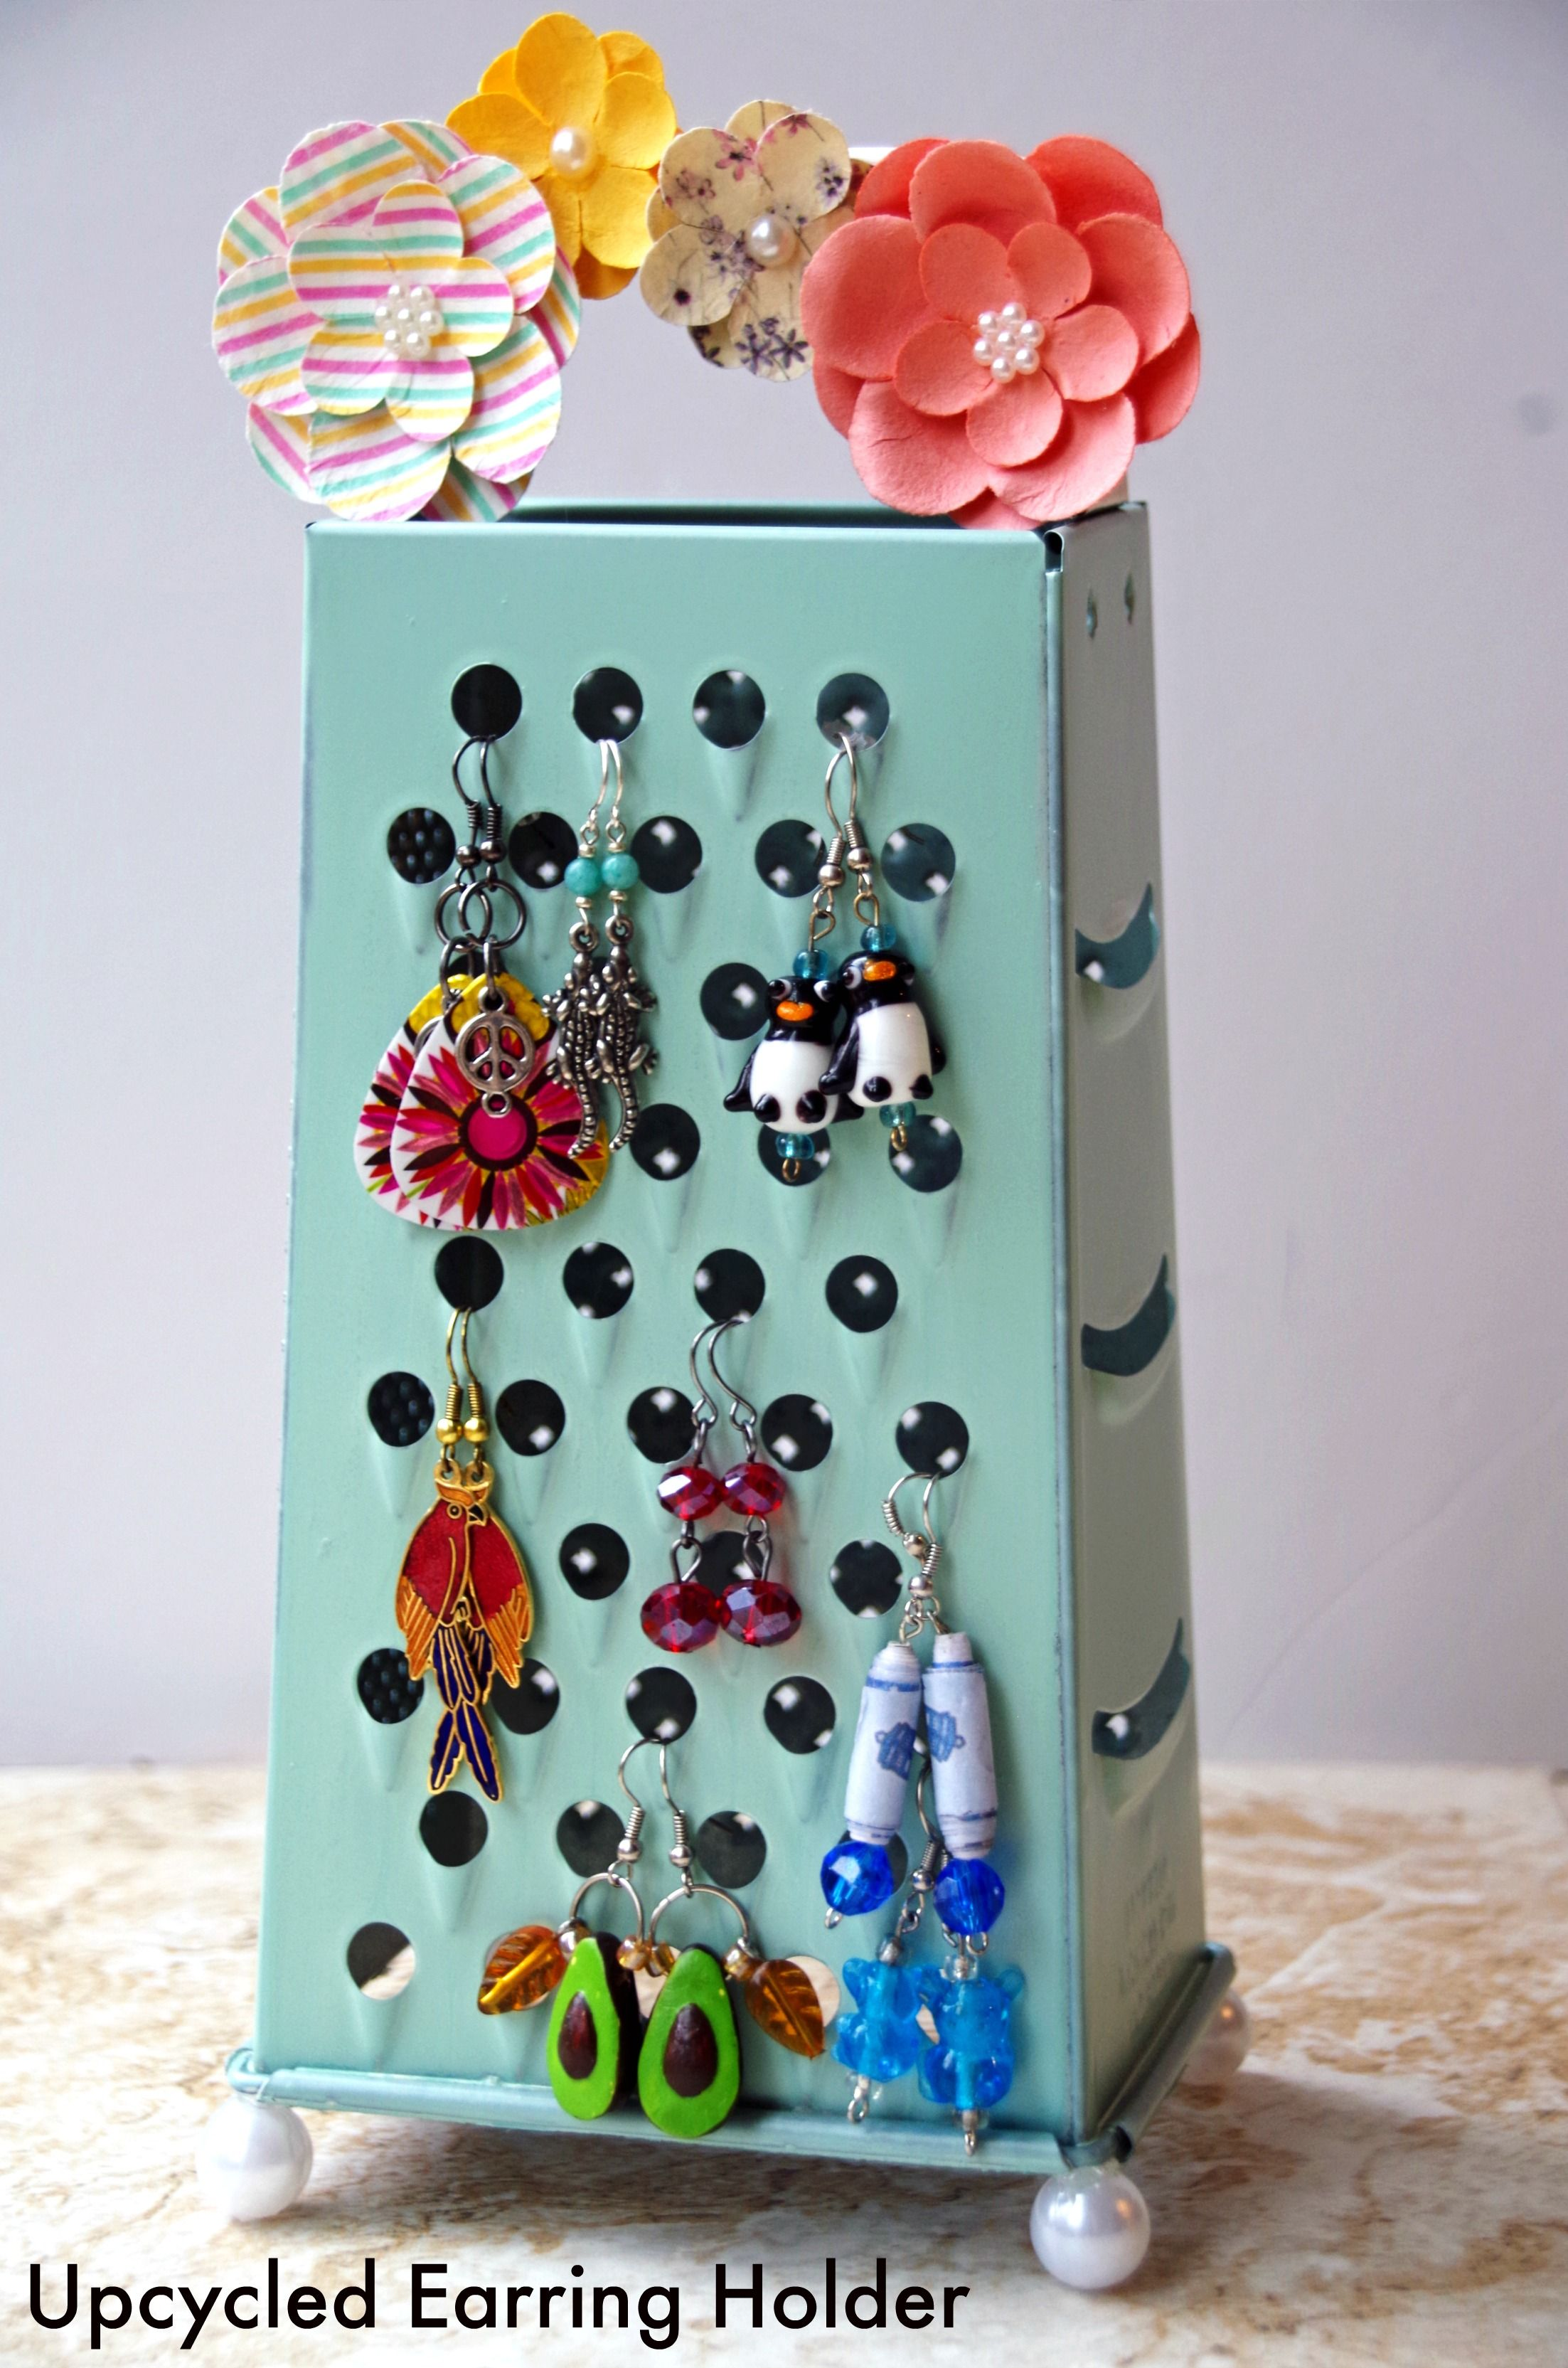 This Homemade Earring Holder Is Perfect For Dangling Earrings That Need To Be Better Cared An Easy Upcycled Craft Idea Old Cheese Grater